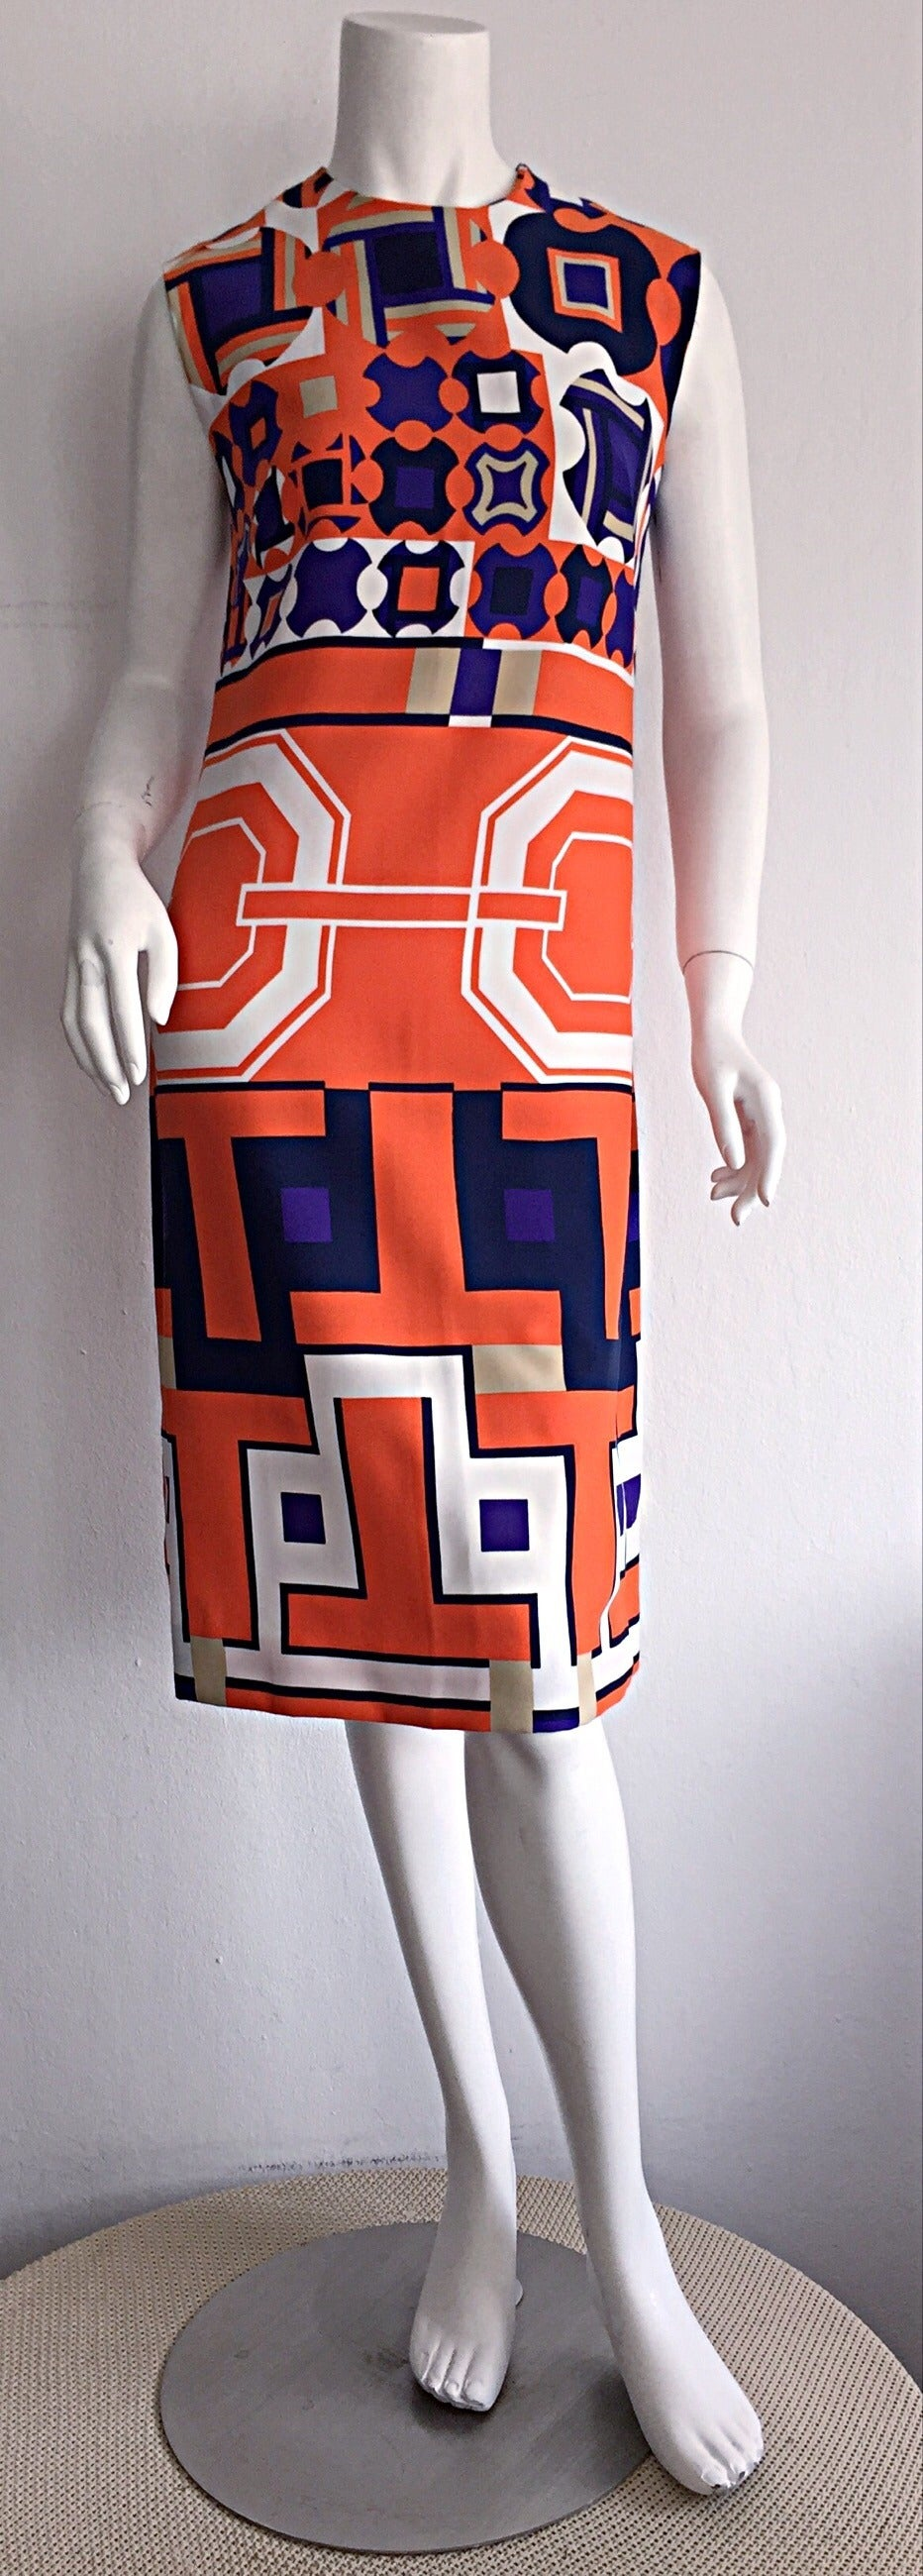 1960s Vintage Lanvin Op - Art Geometric Mod ' Buckle ' Print Shift 3 - D Dress 2